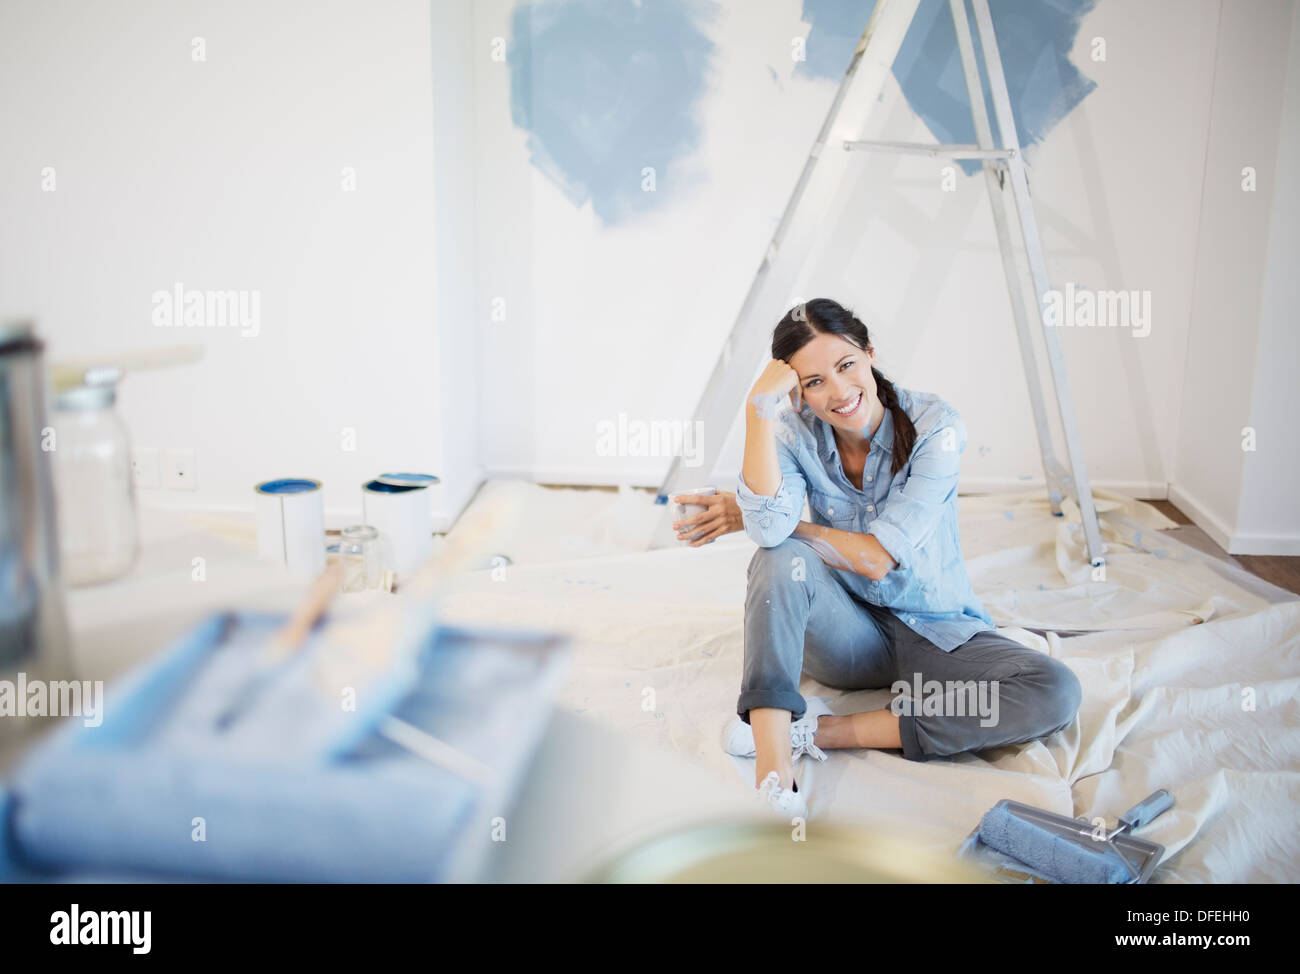 Portrait of woman surrounded by paint supplies - Stock Image